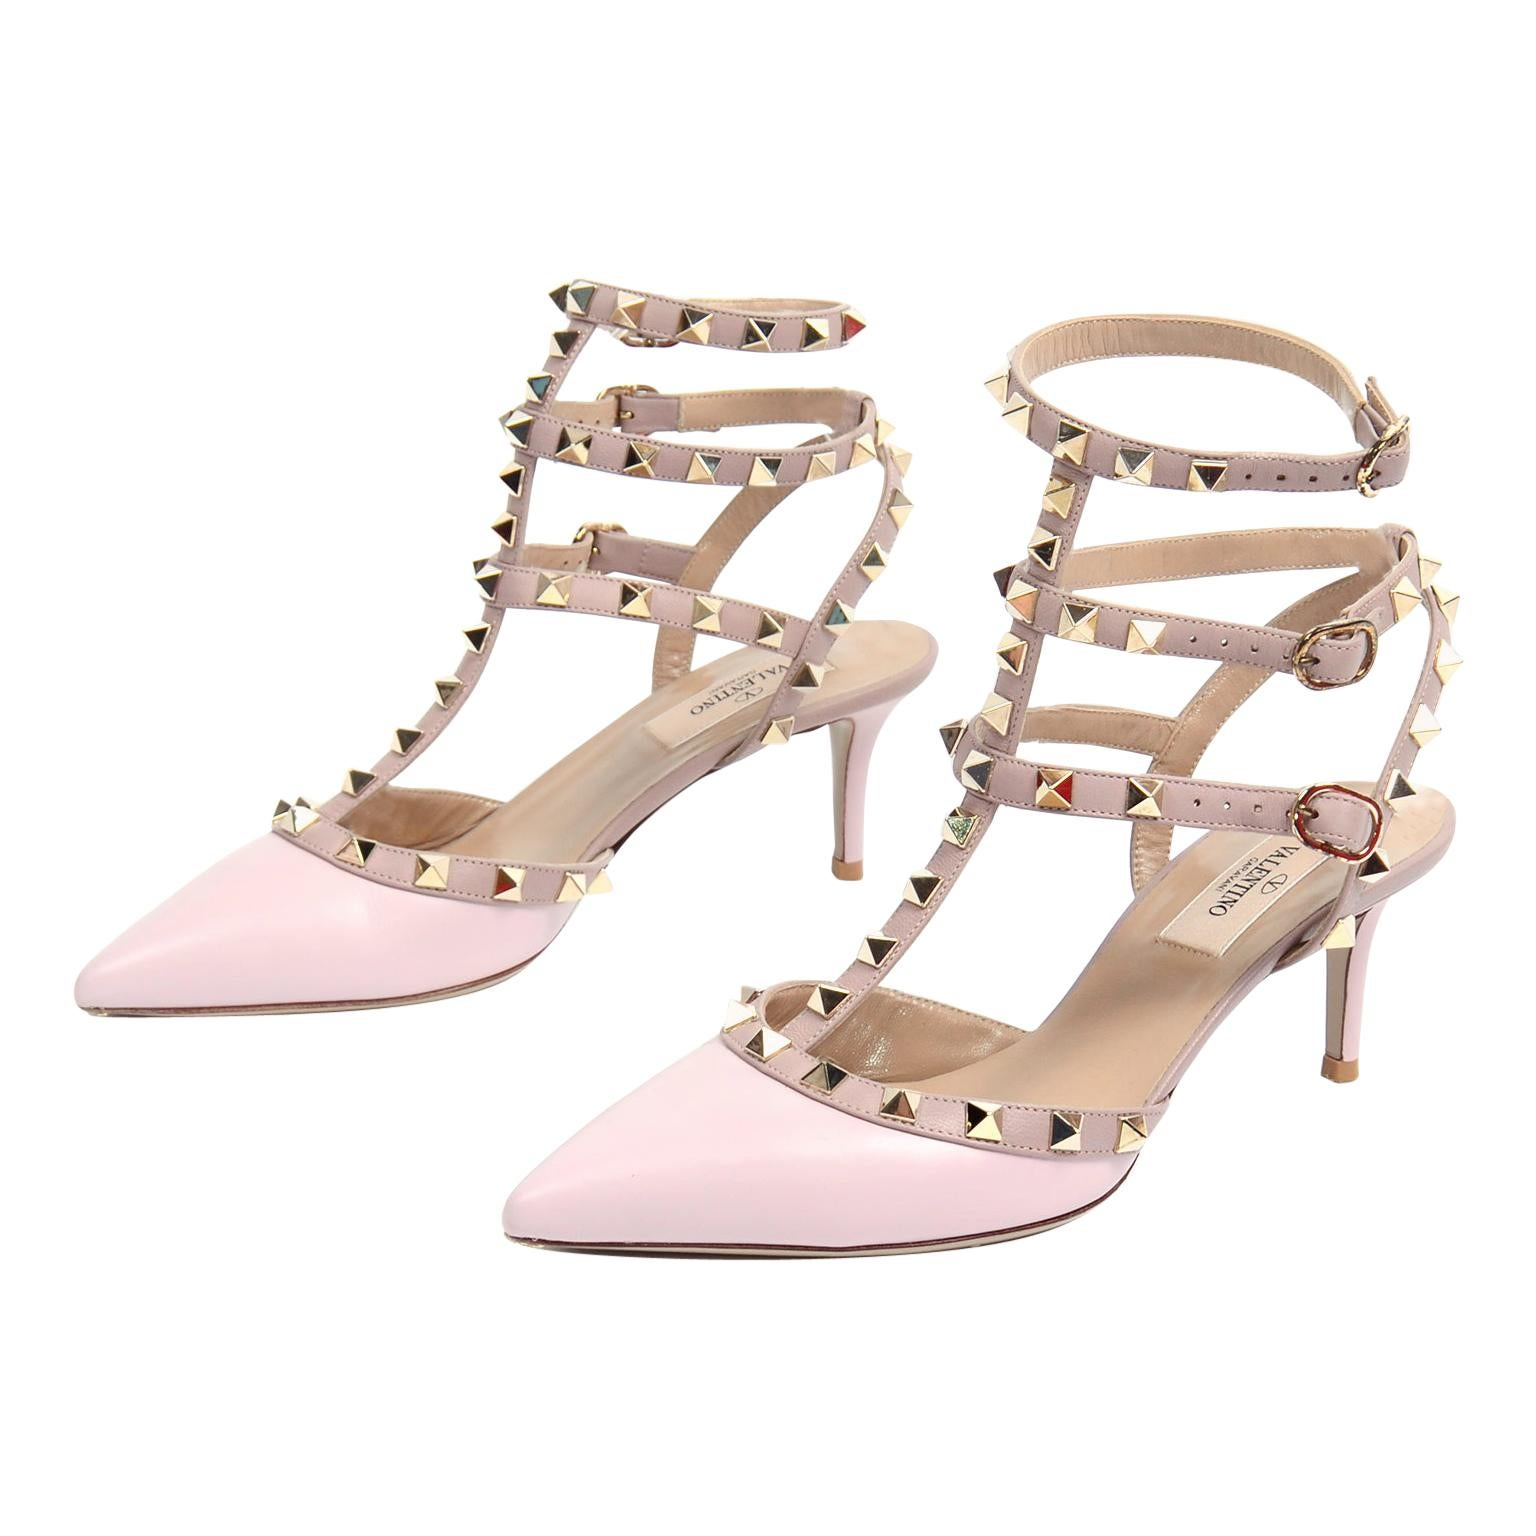 Valentino Rockstud Cage Ankle Strap Shoes W Heels in Water Rose Pink Size 6.5